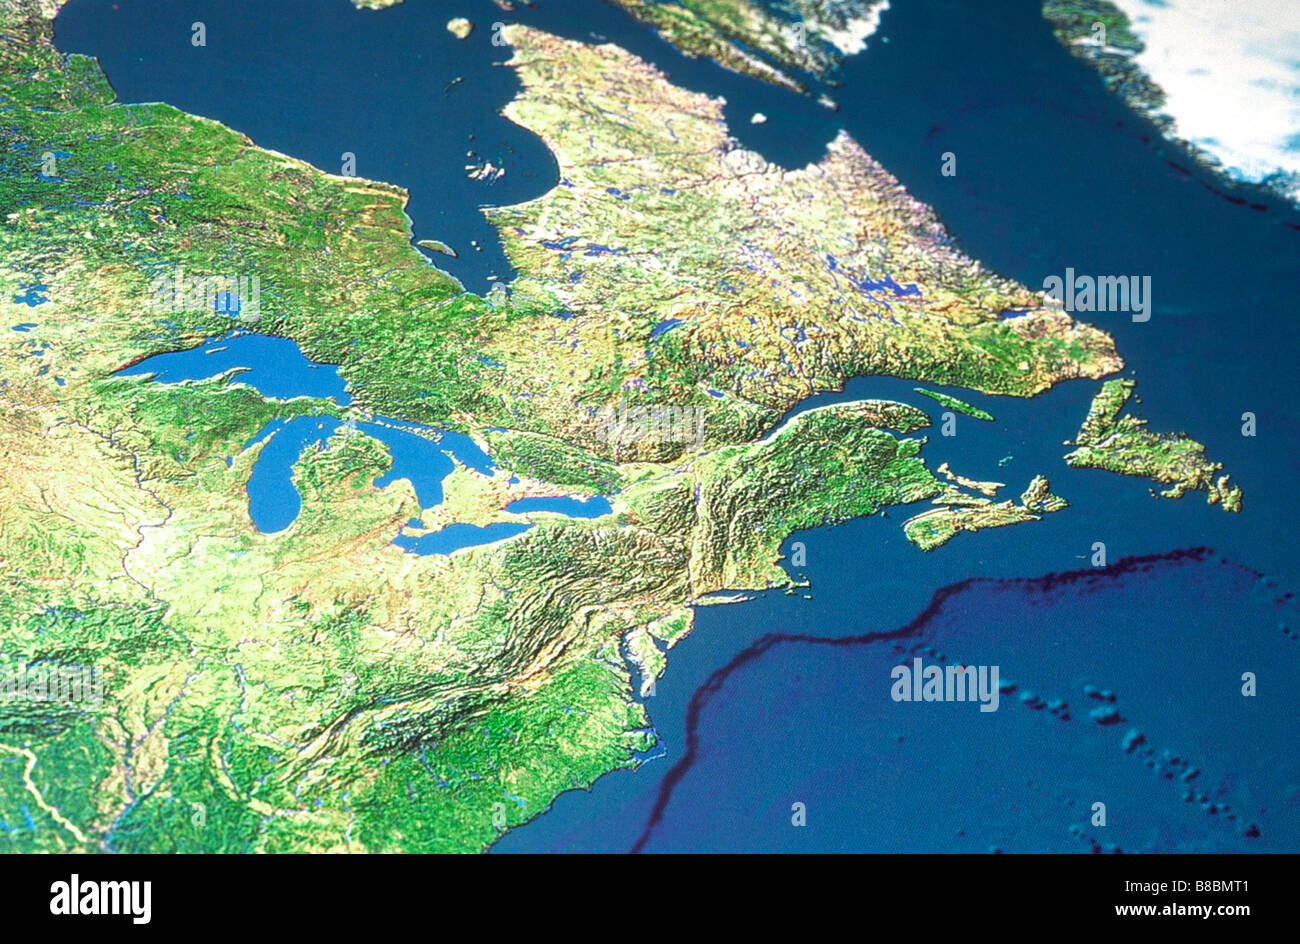 Map Canada Great Lakes Stock Photo Royalty Free Image - Map of canada with great lakes